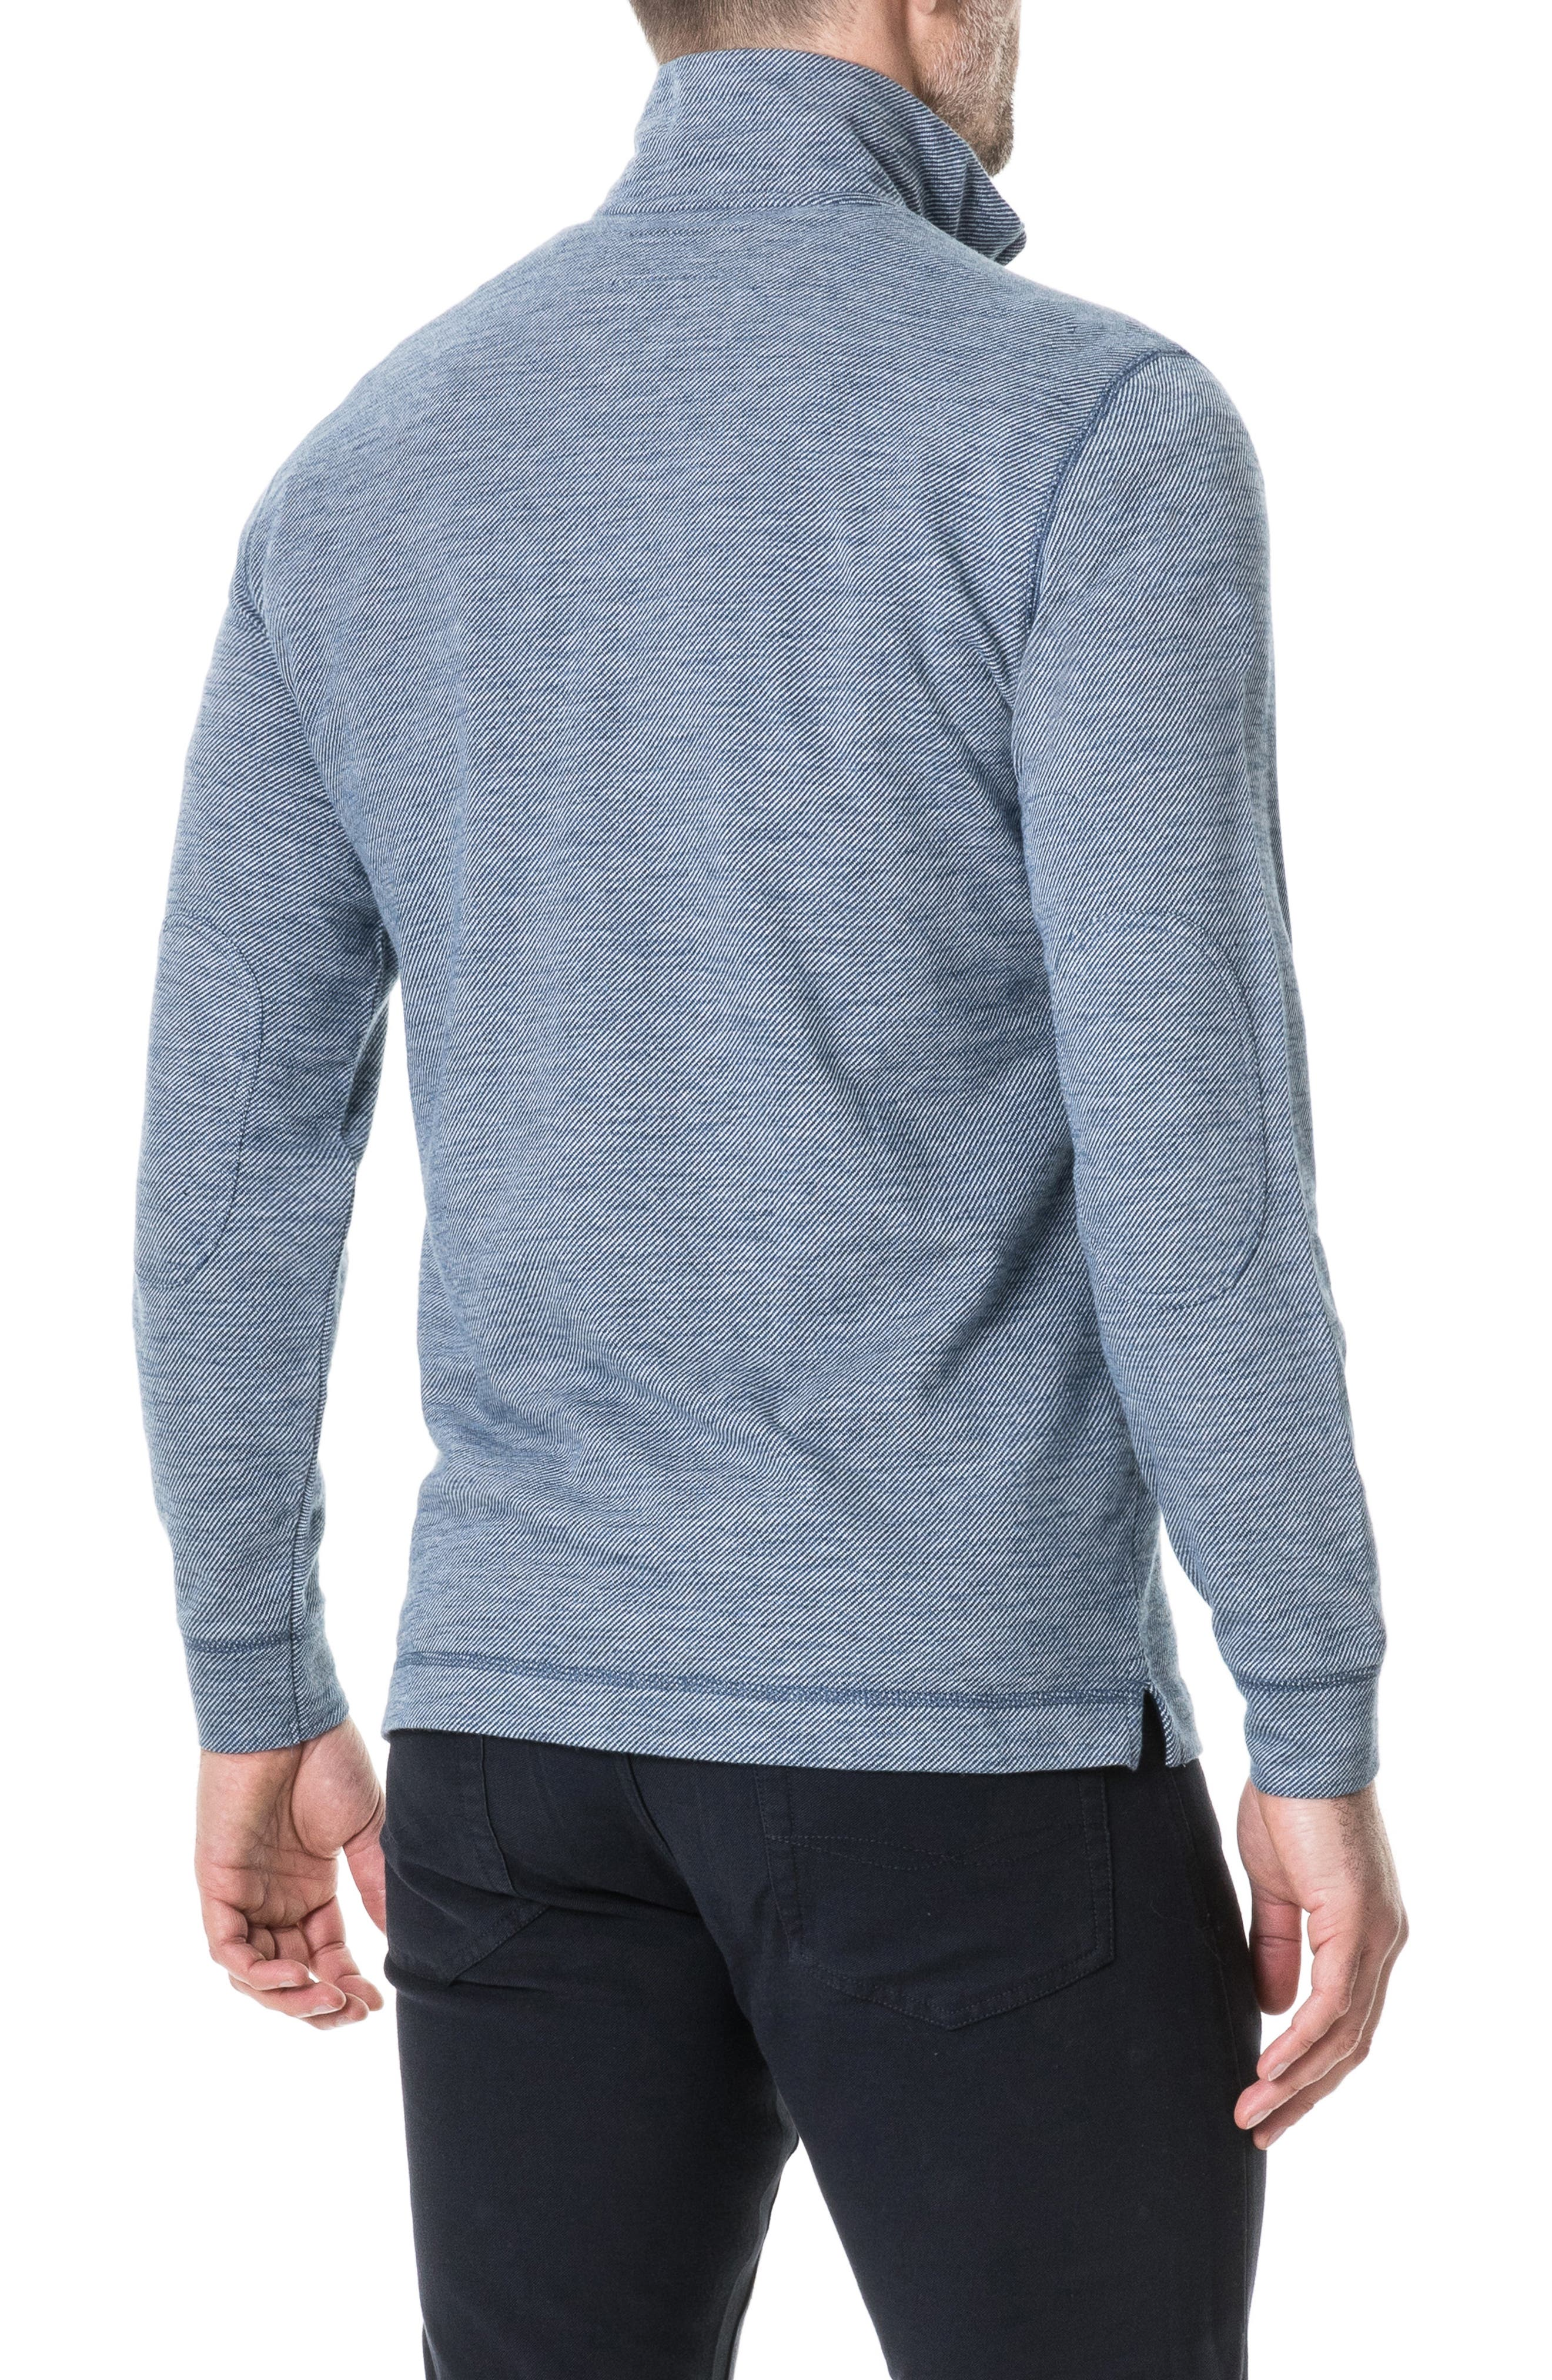 RODD & GUNN, Anvil Island Regular Fit Pullover, Alternate thumbnail 2, color, DENIM BLUE